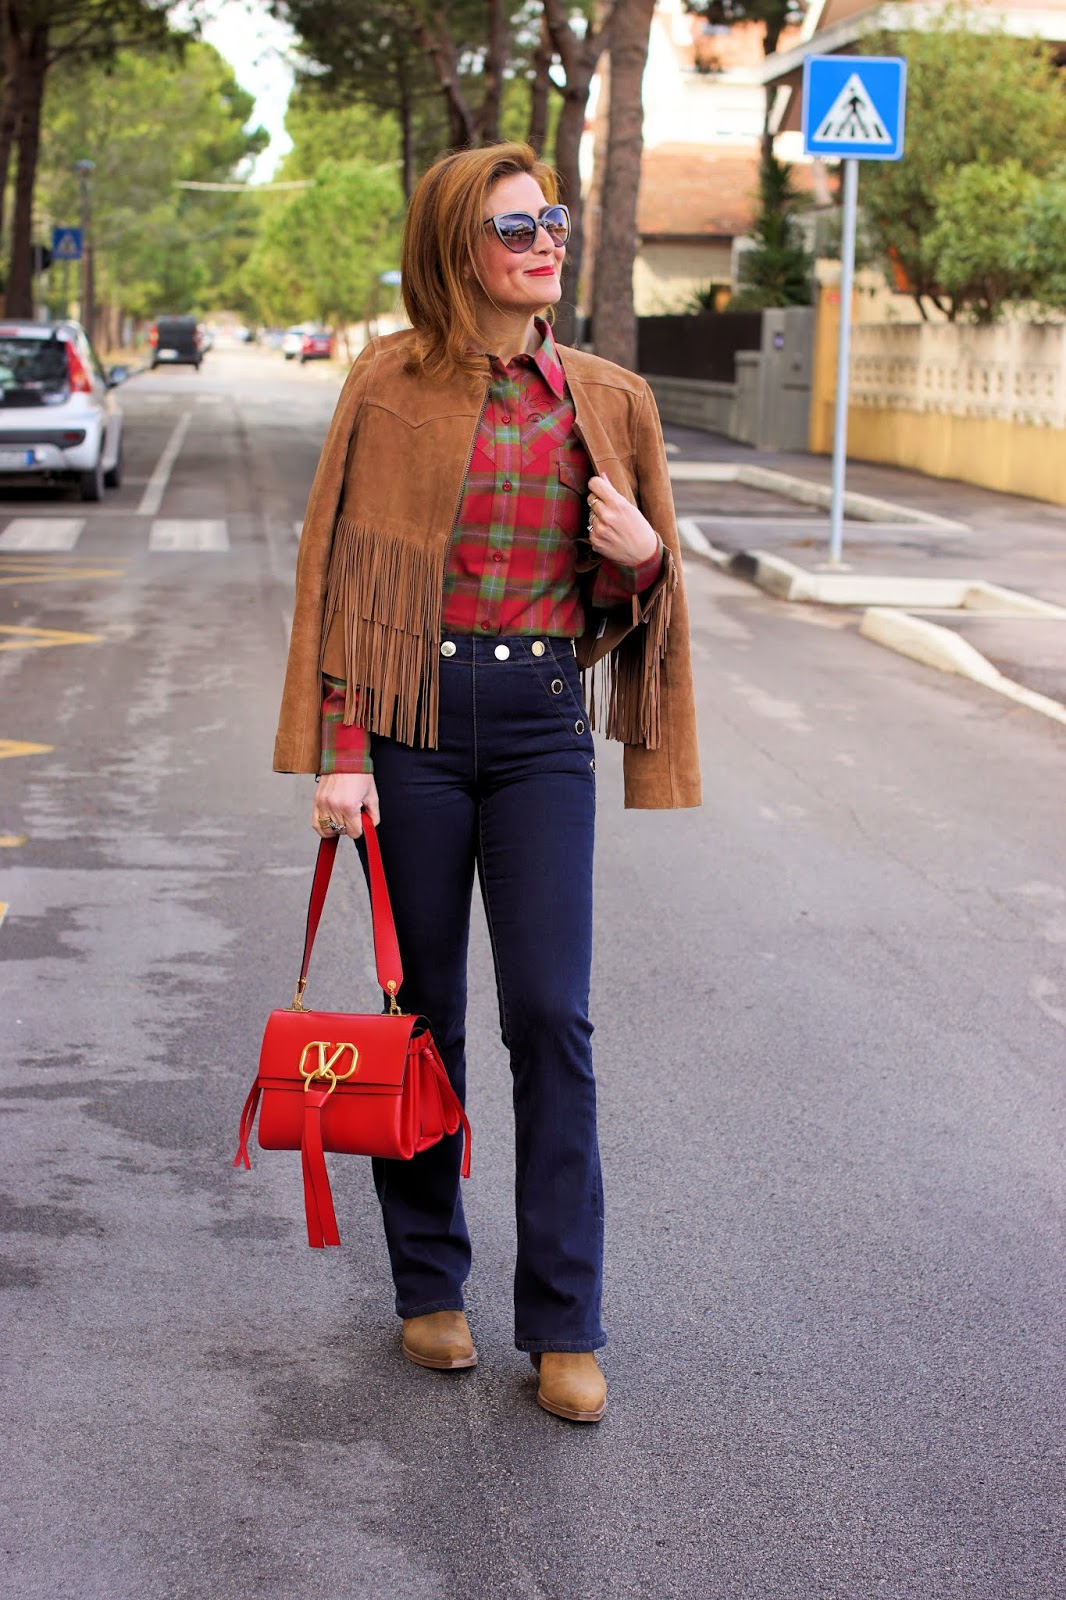 Suede fringe jacket and Western shirt on Fashion and Cookies fashion blog, fashion blogger style